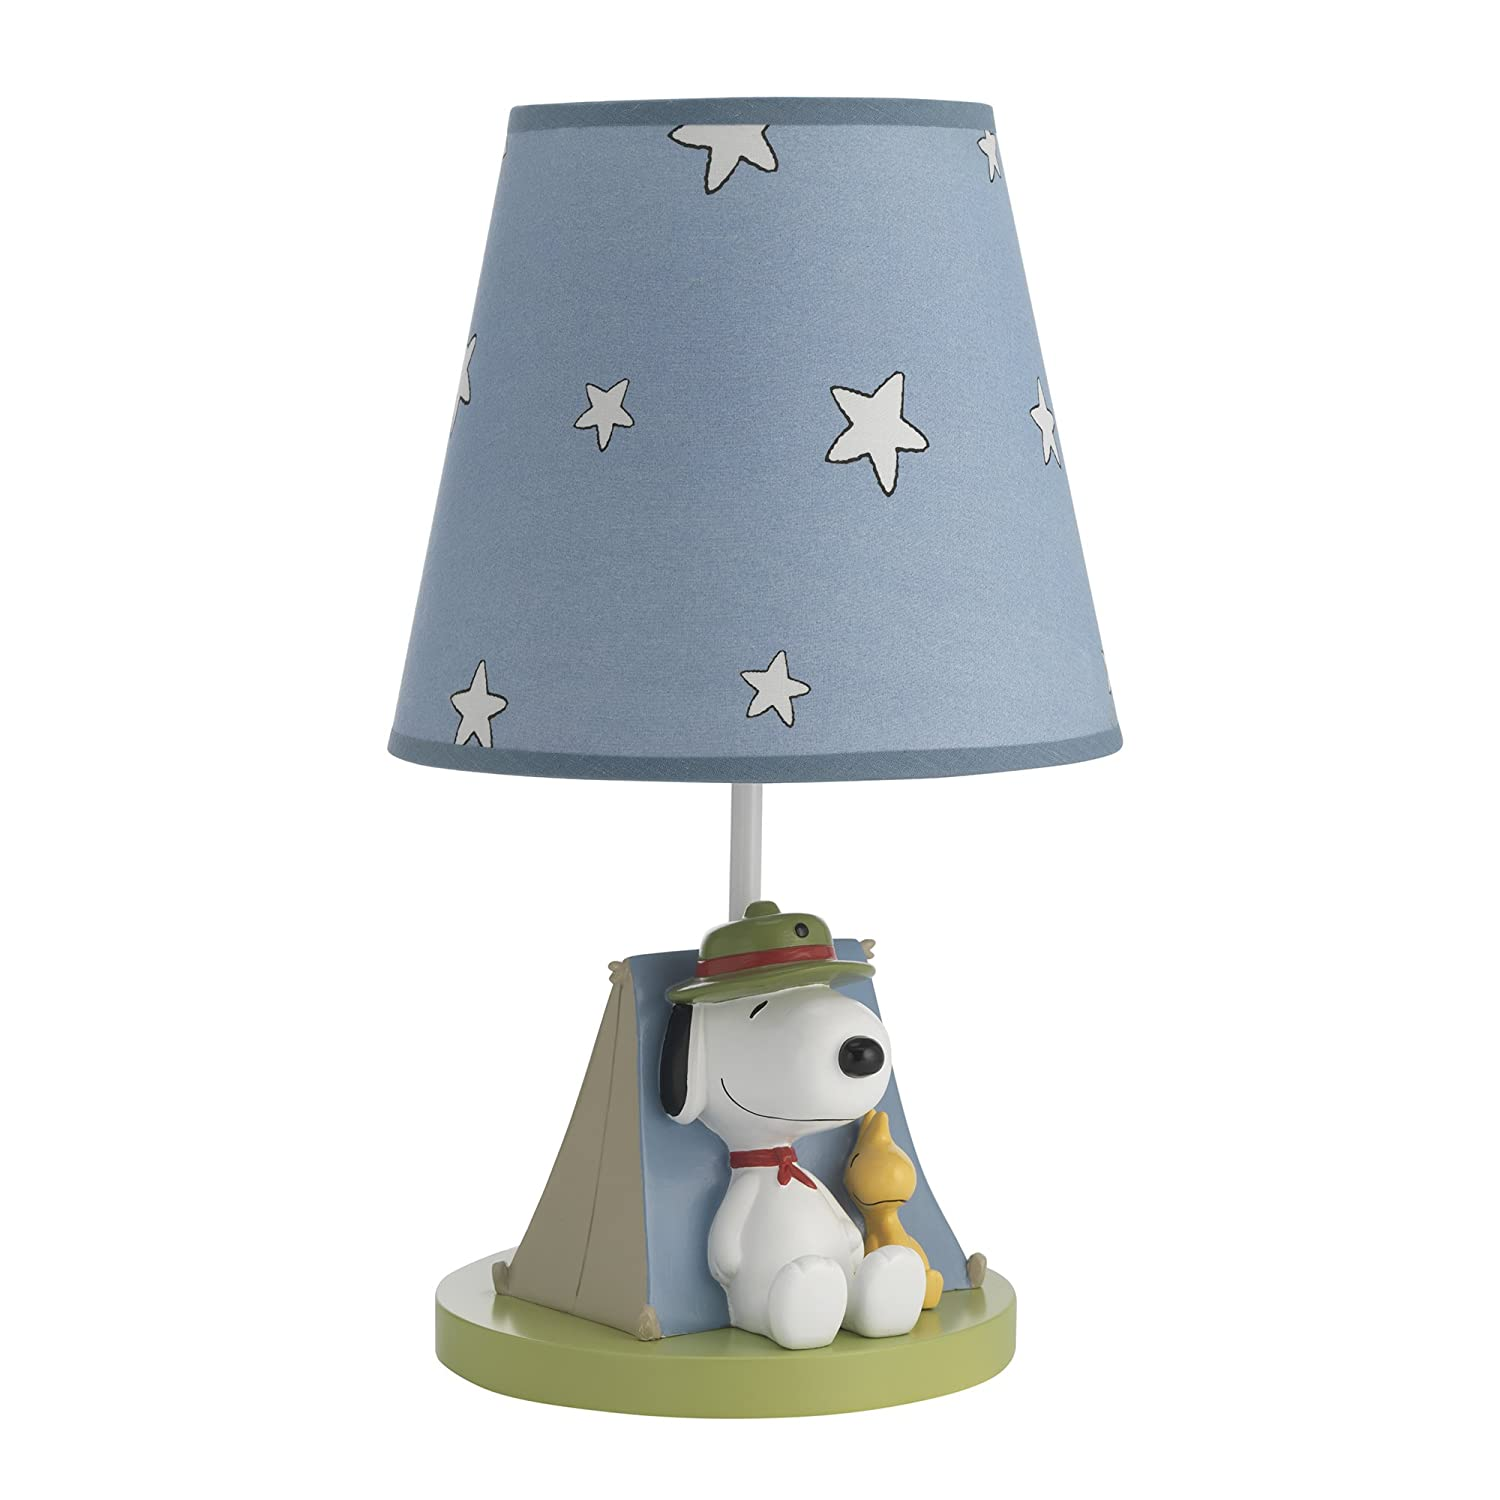 Peanuts Snoopy's Campout Stars Lamp with Shade & Bulb, Blue/White Lambs & Ivy 685024B